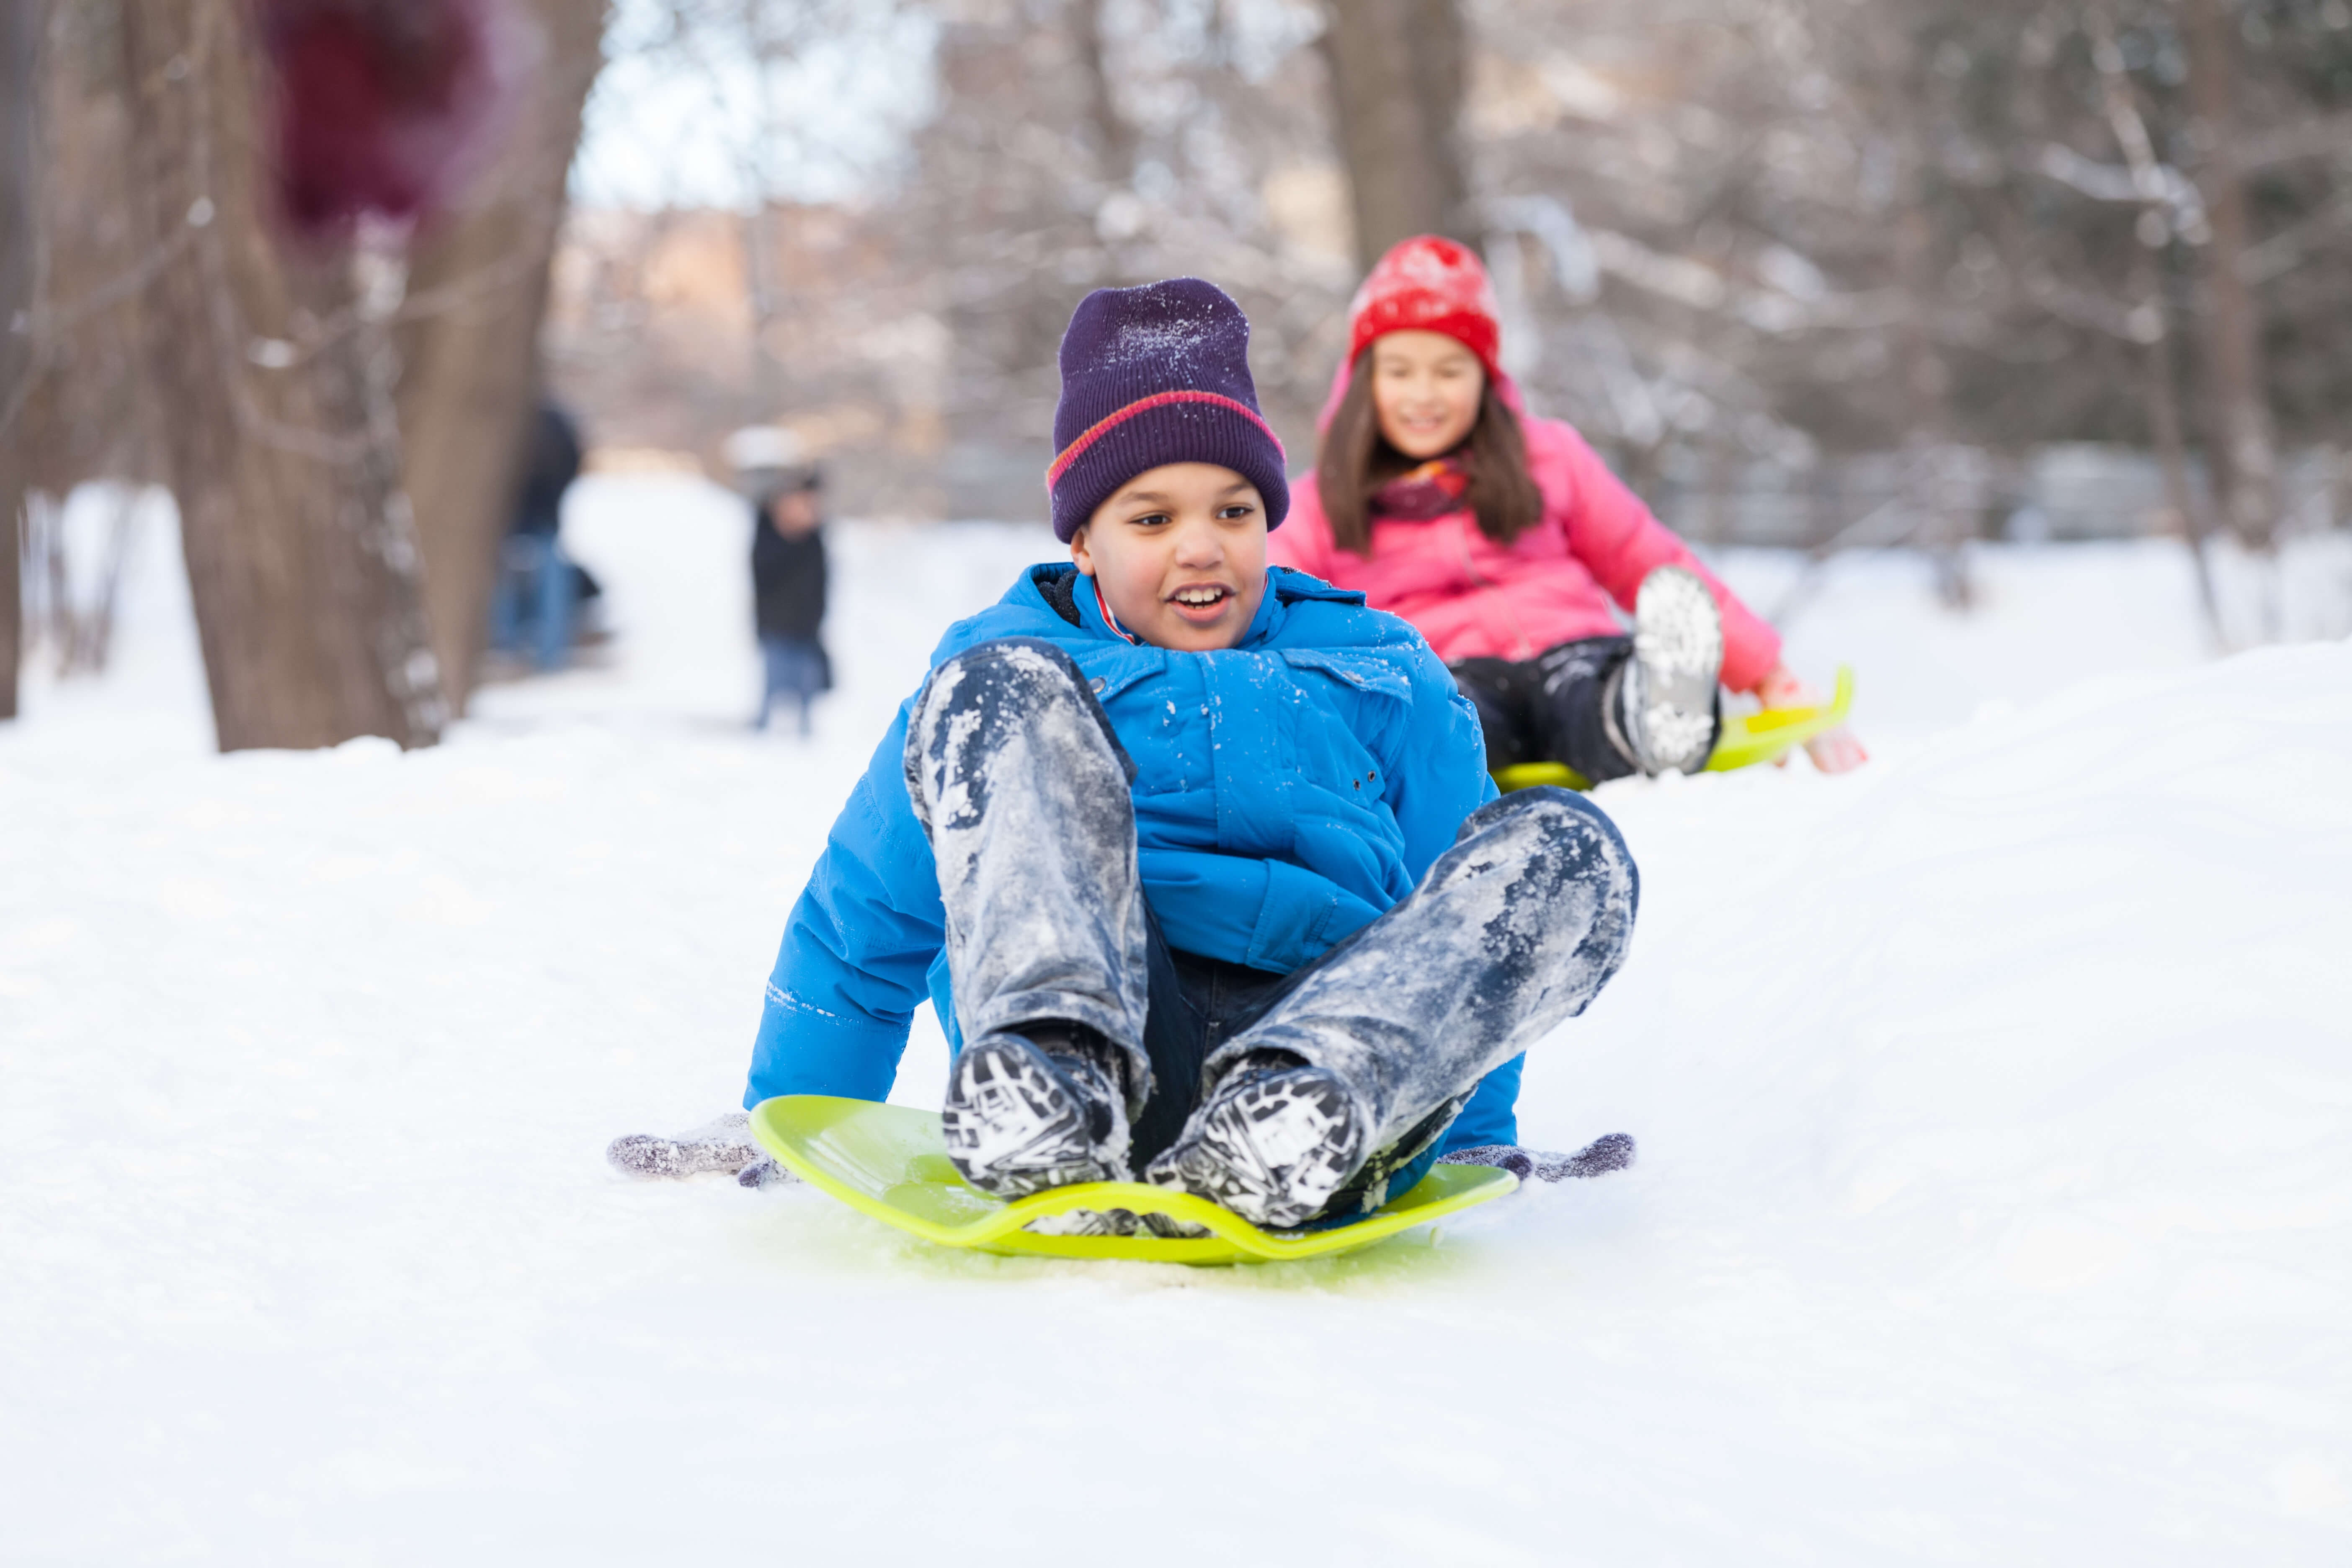 Boy And Girl Sliding On Sledges In Park. Two Children Sitting On Sledges And Speeding Down